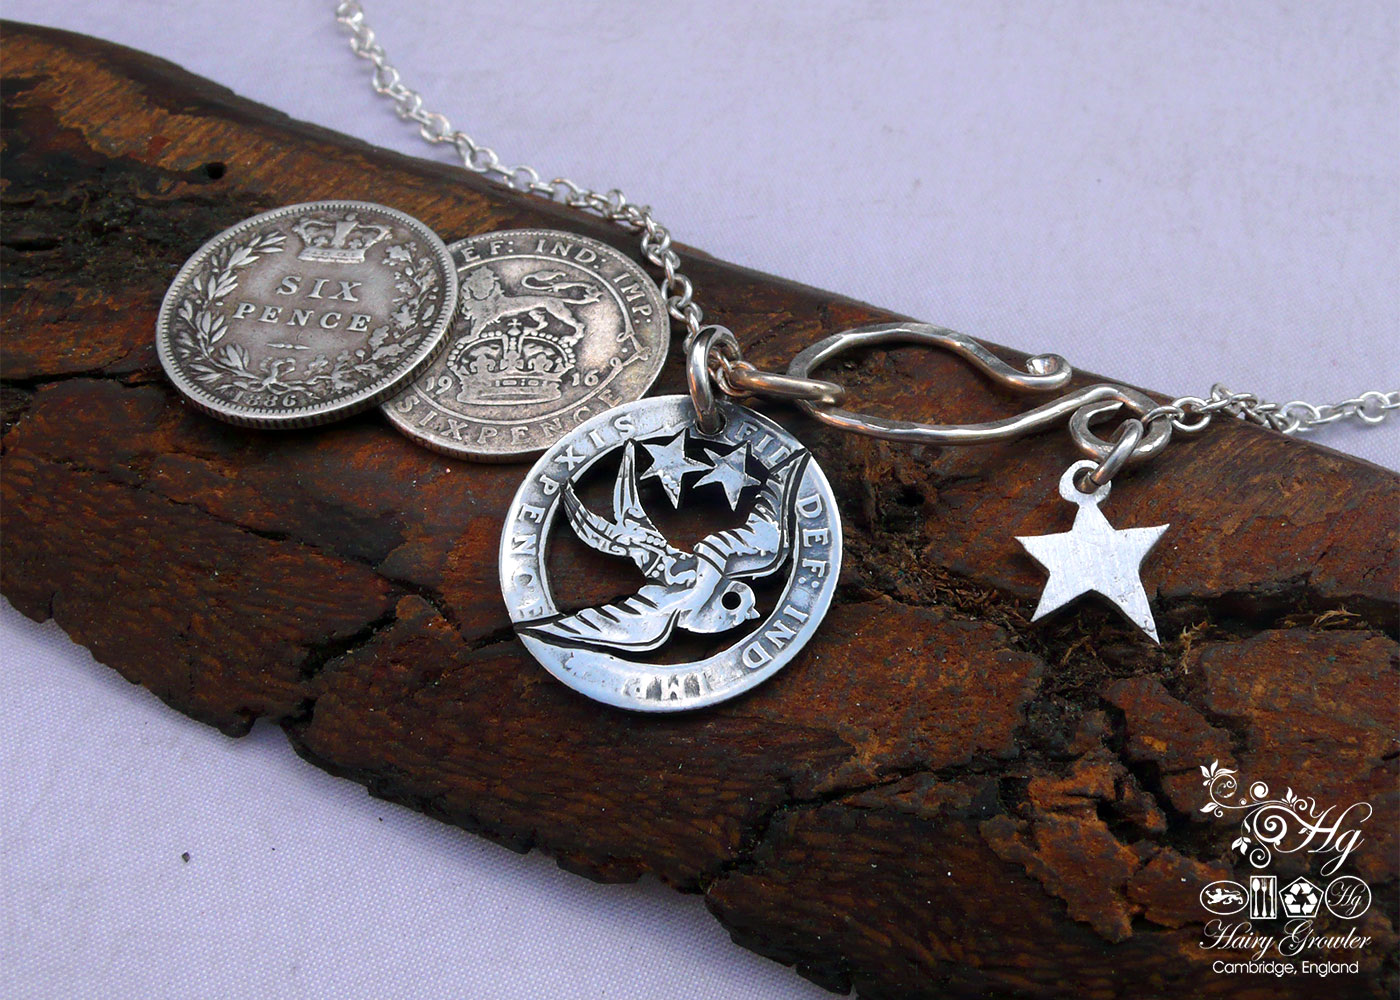 Handcrafted and repurposed silver sixpence coin birdsong swallow pendant necklace